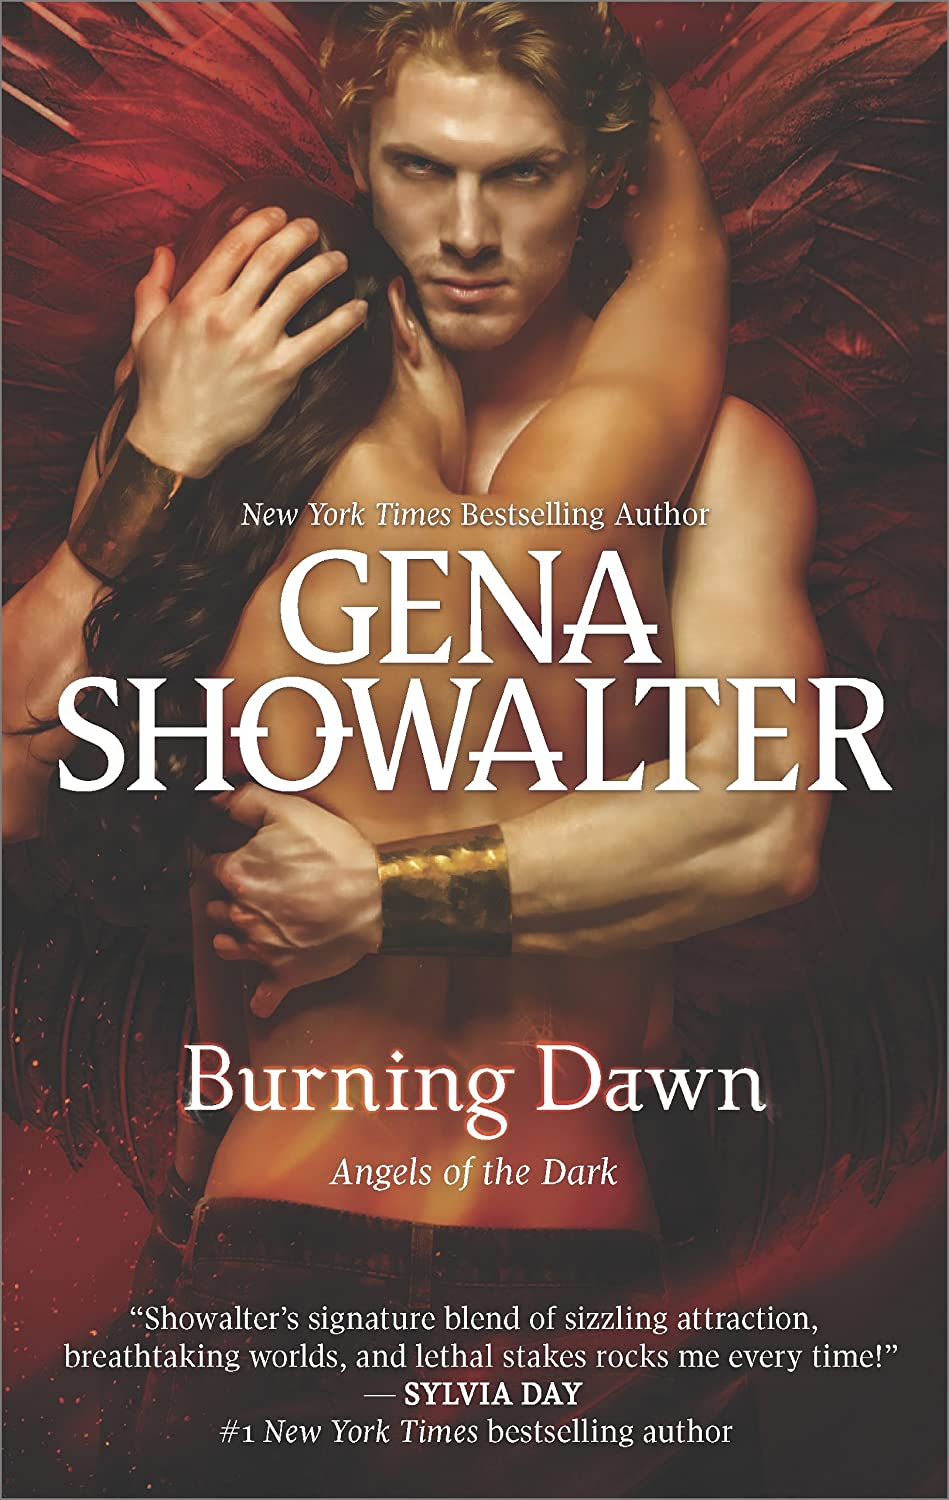 The cover of Burning Dawn by Gena Showalter